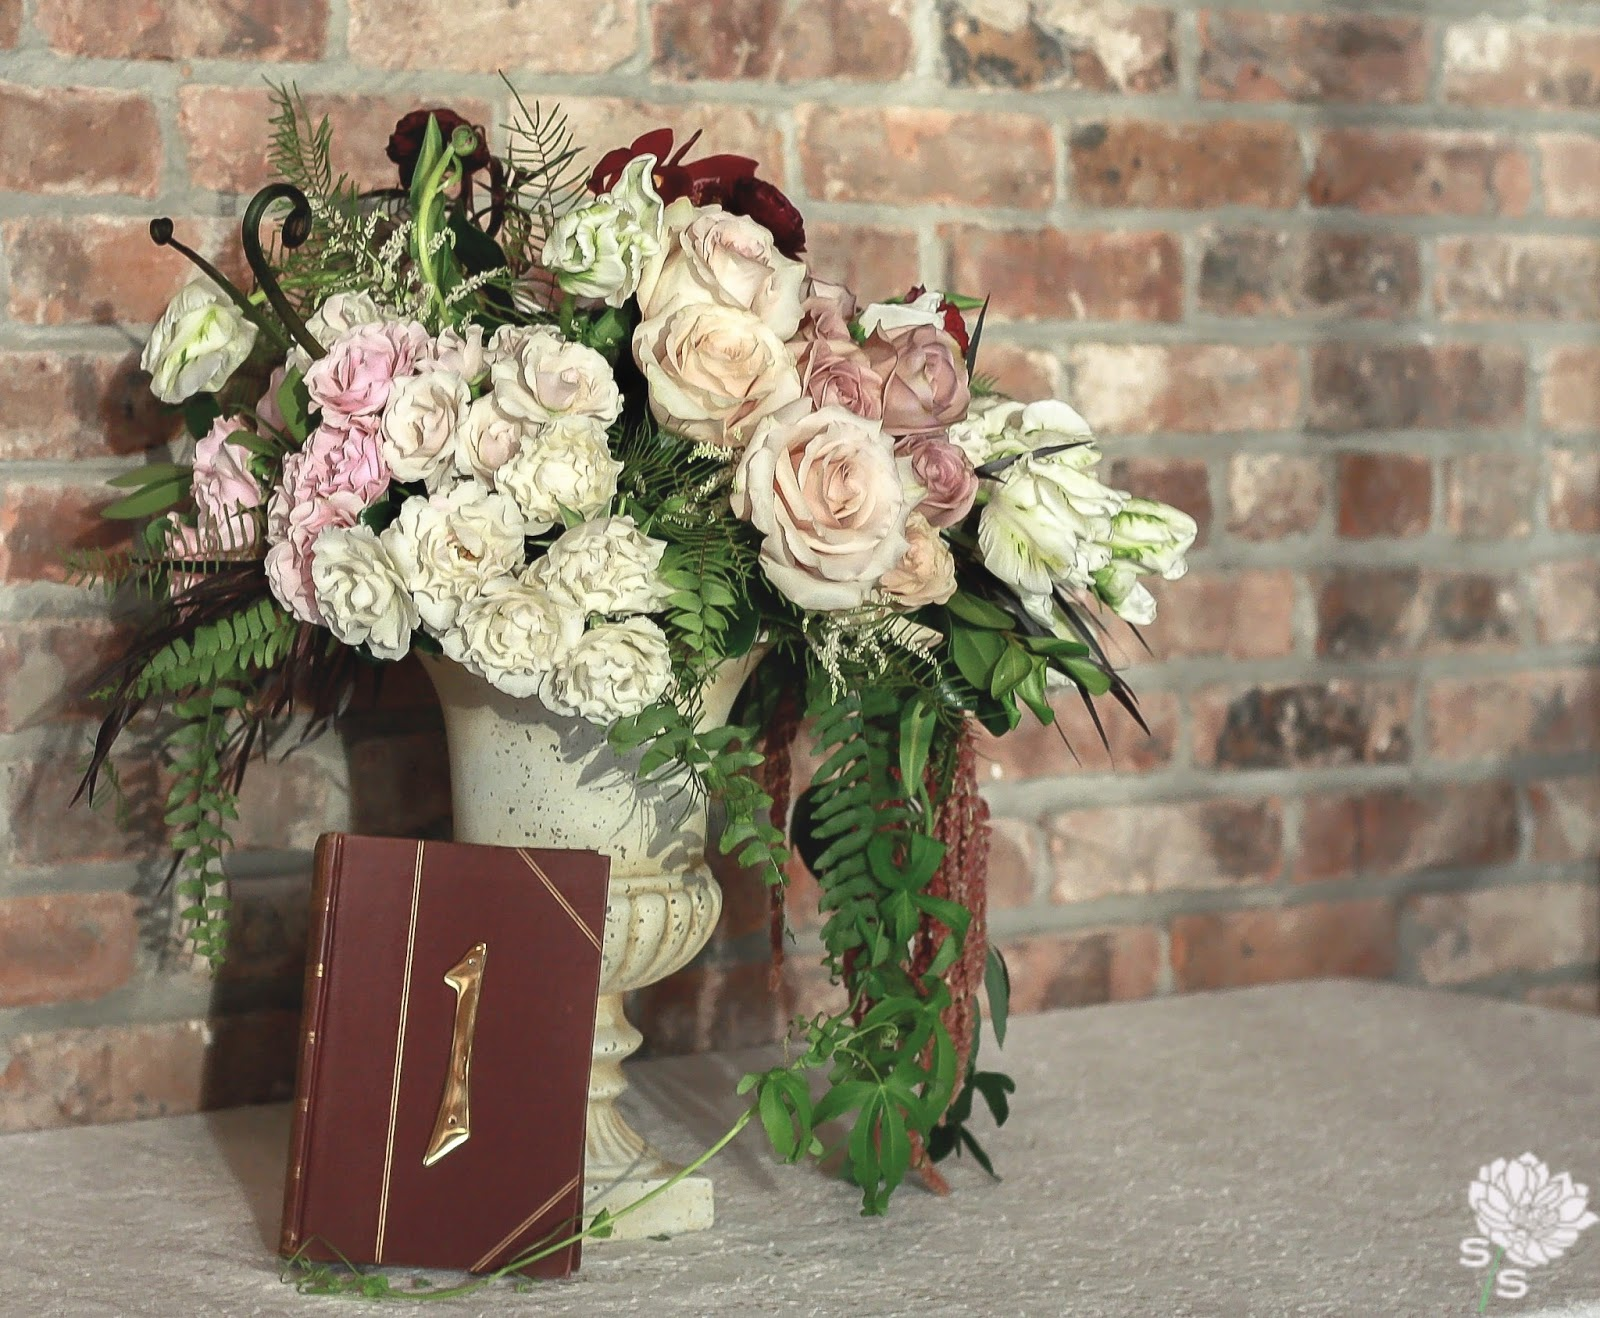 The Roundhouse Wedding - Beacon, NY - Hudson Valley Wedding - Exposed Brick - Wedding Flowers - Splendid Stems Floral Designs